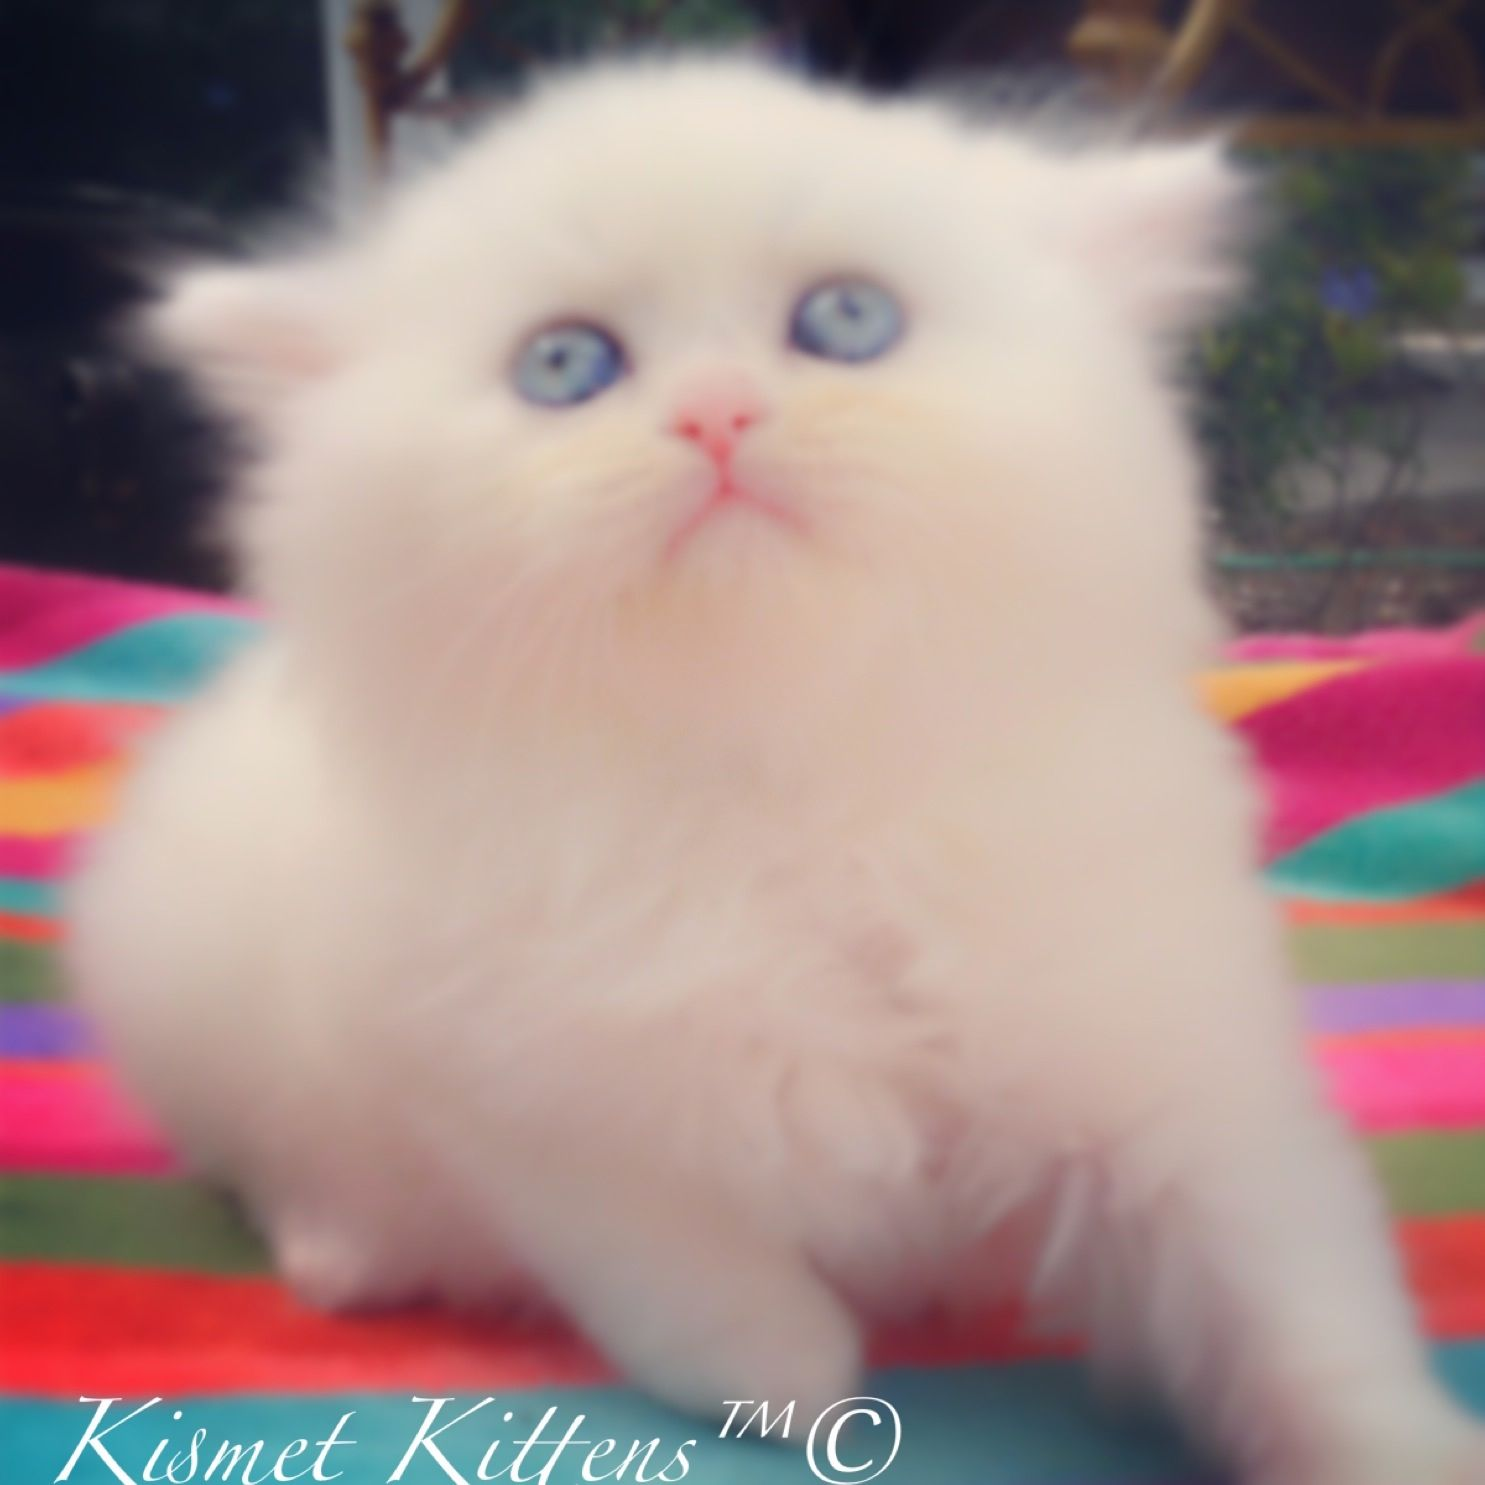 For Sale White Doll Face Kitten Male With Blue Eyes Ready To Go Mid January This Beautiful Boy Will Be Featured In A Tv Commercial To Reserve 813 409 84